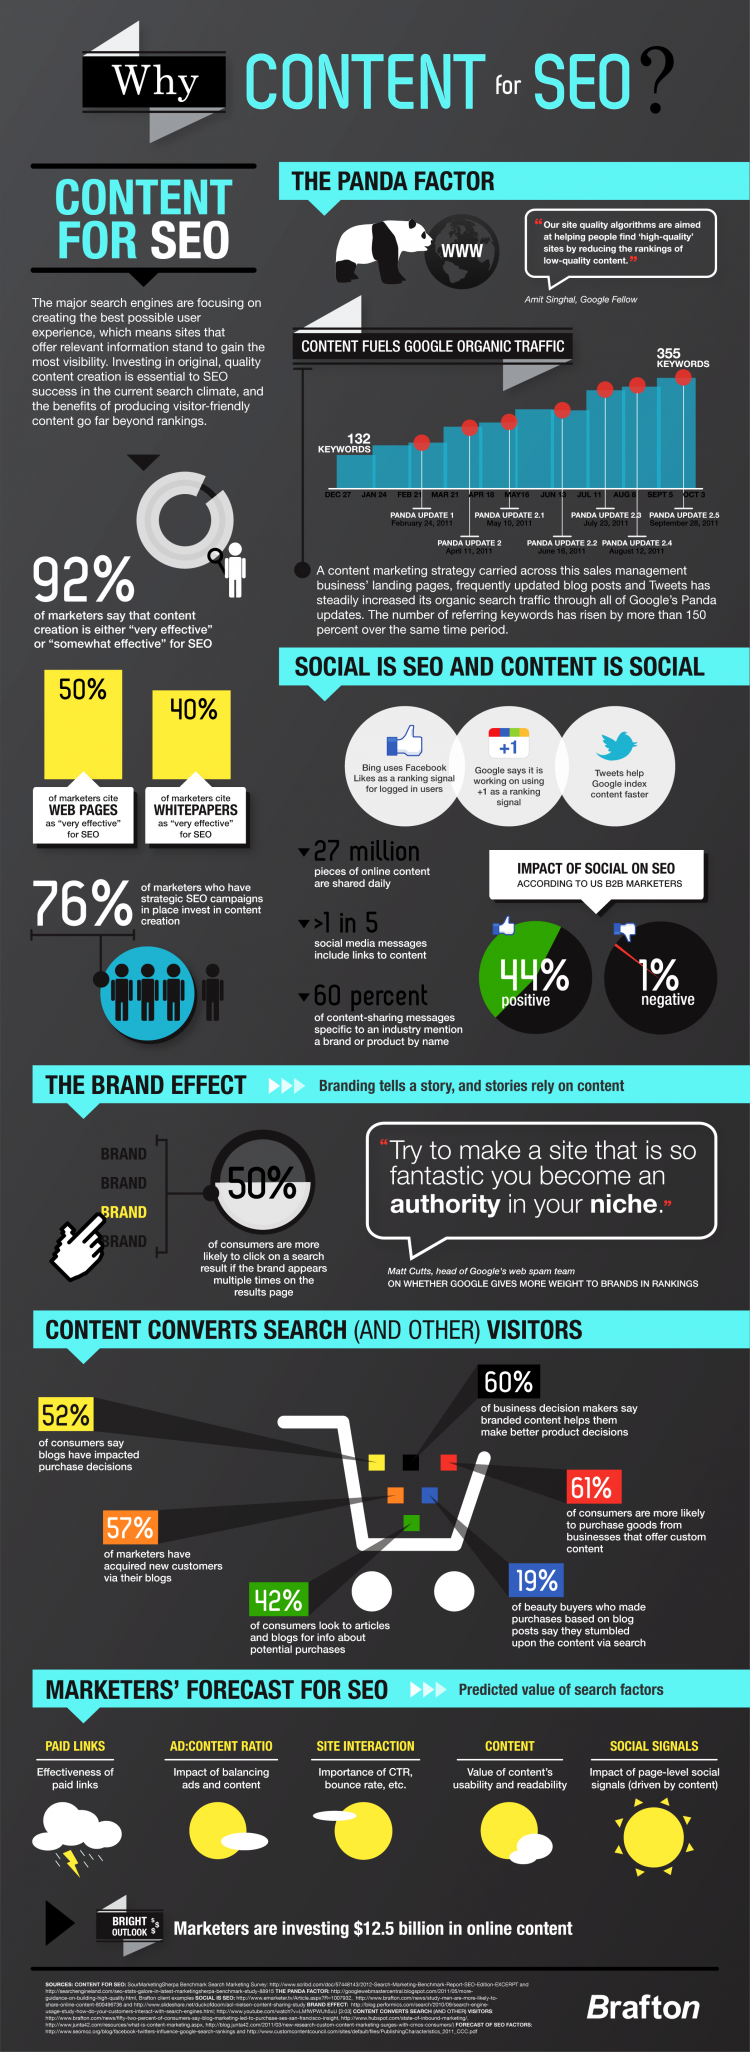 As this infographic shows, content marketing is the key to SEO success in the current search landscape.